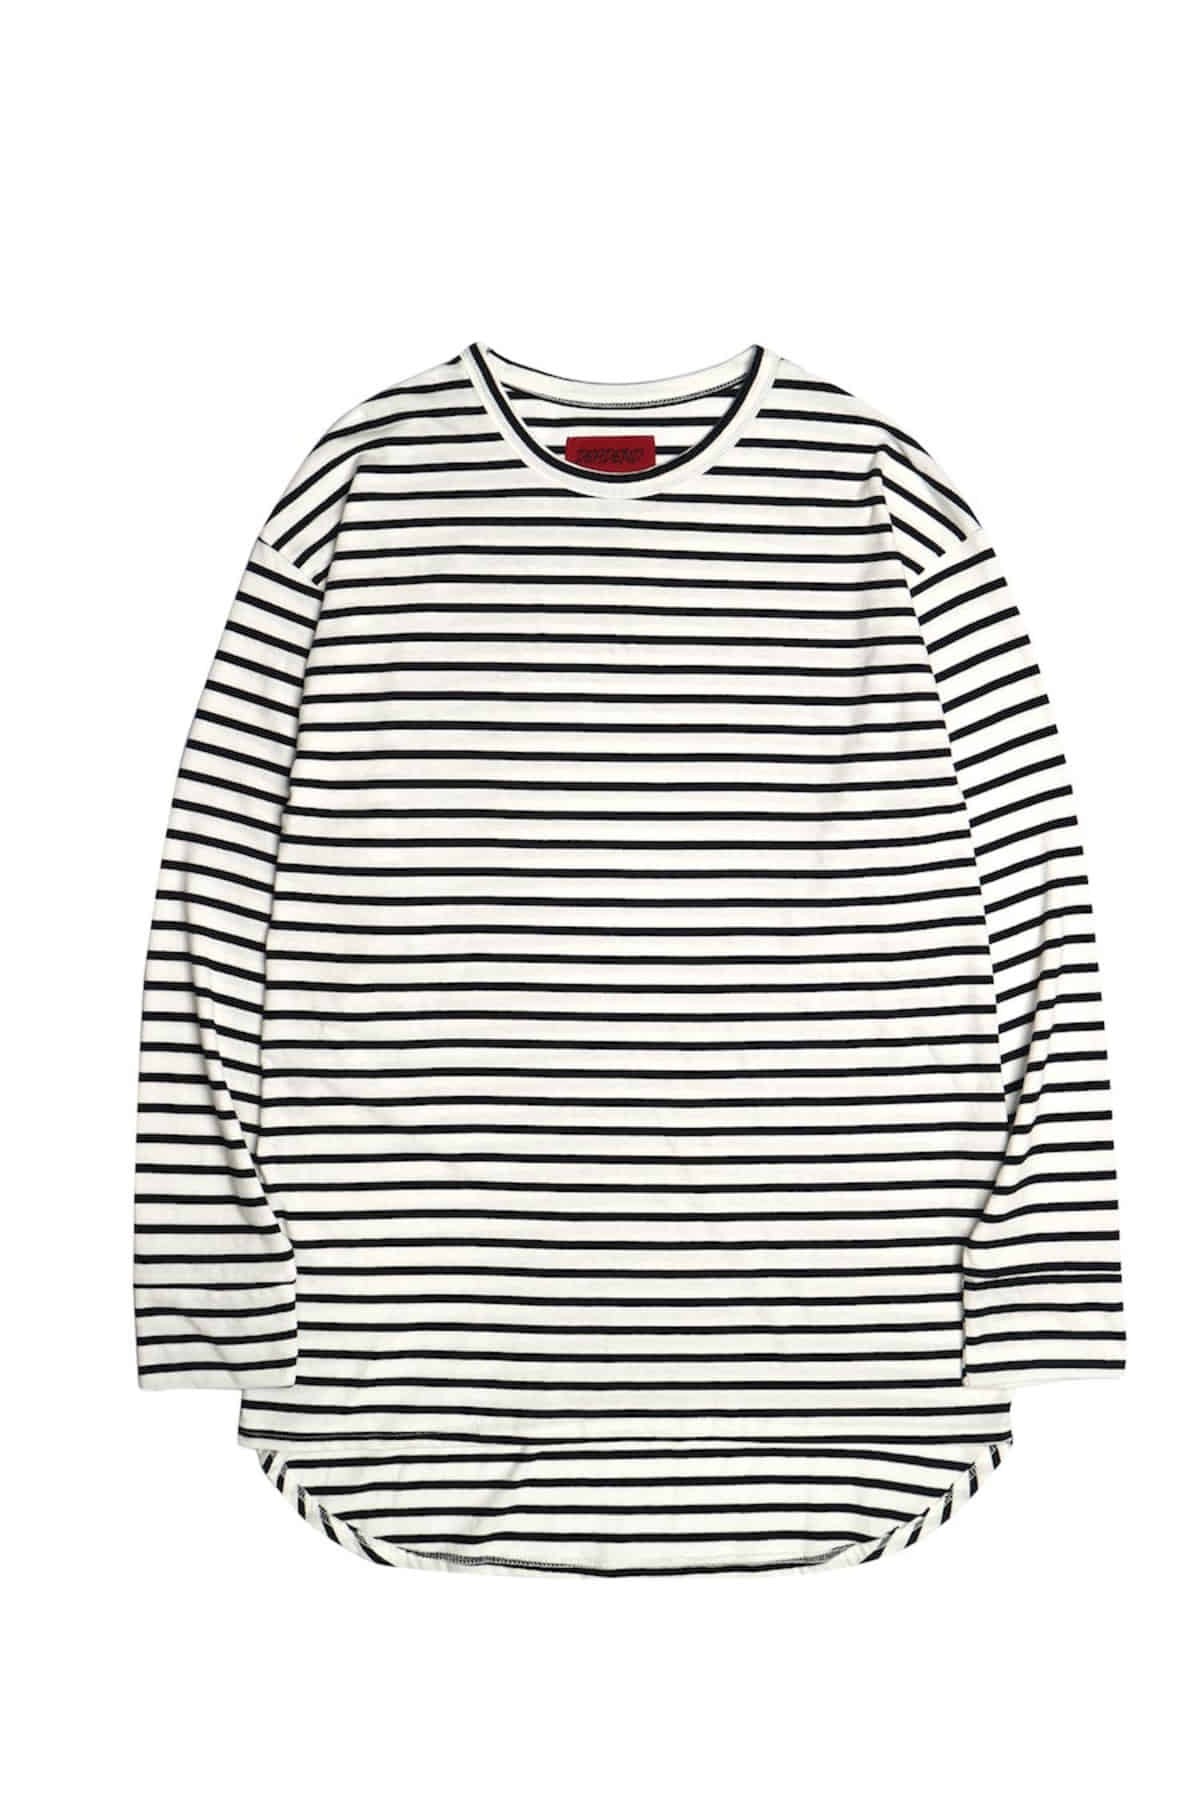 WHITE STRIPE IMBALANCE LONG SLV